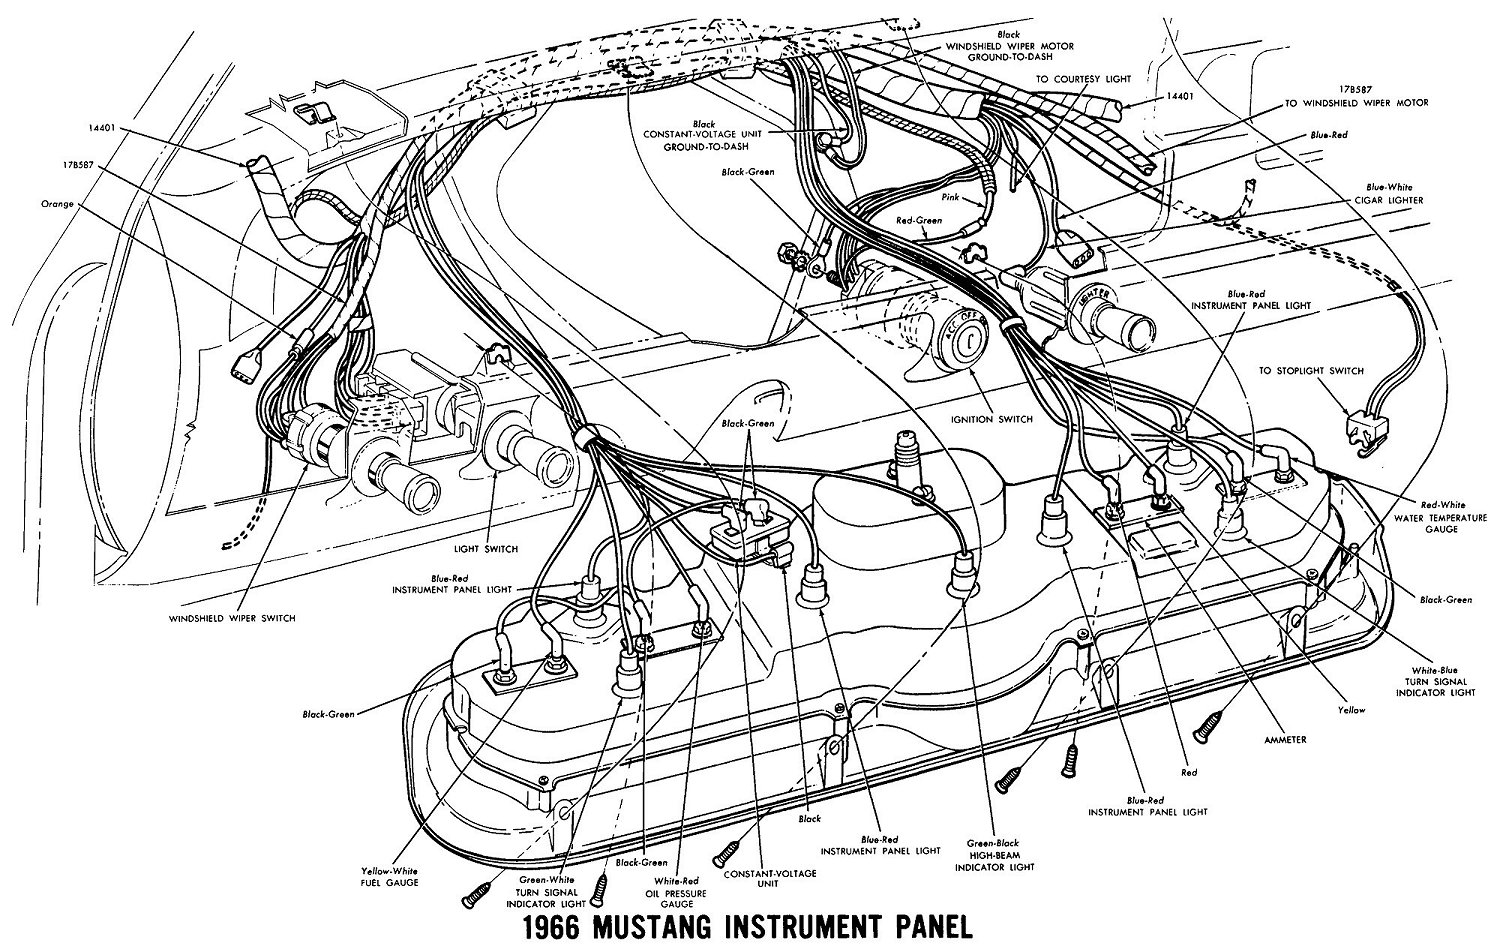 66instr 1966 mustang wiring diagrams average joe restoration 1966 mustang headlight wiring diagram at n-0.co